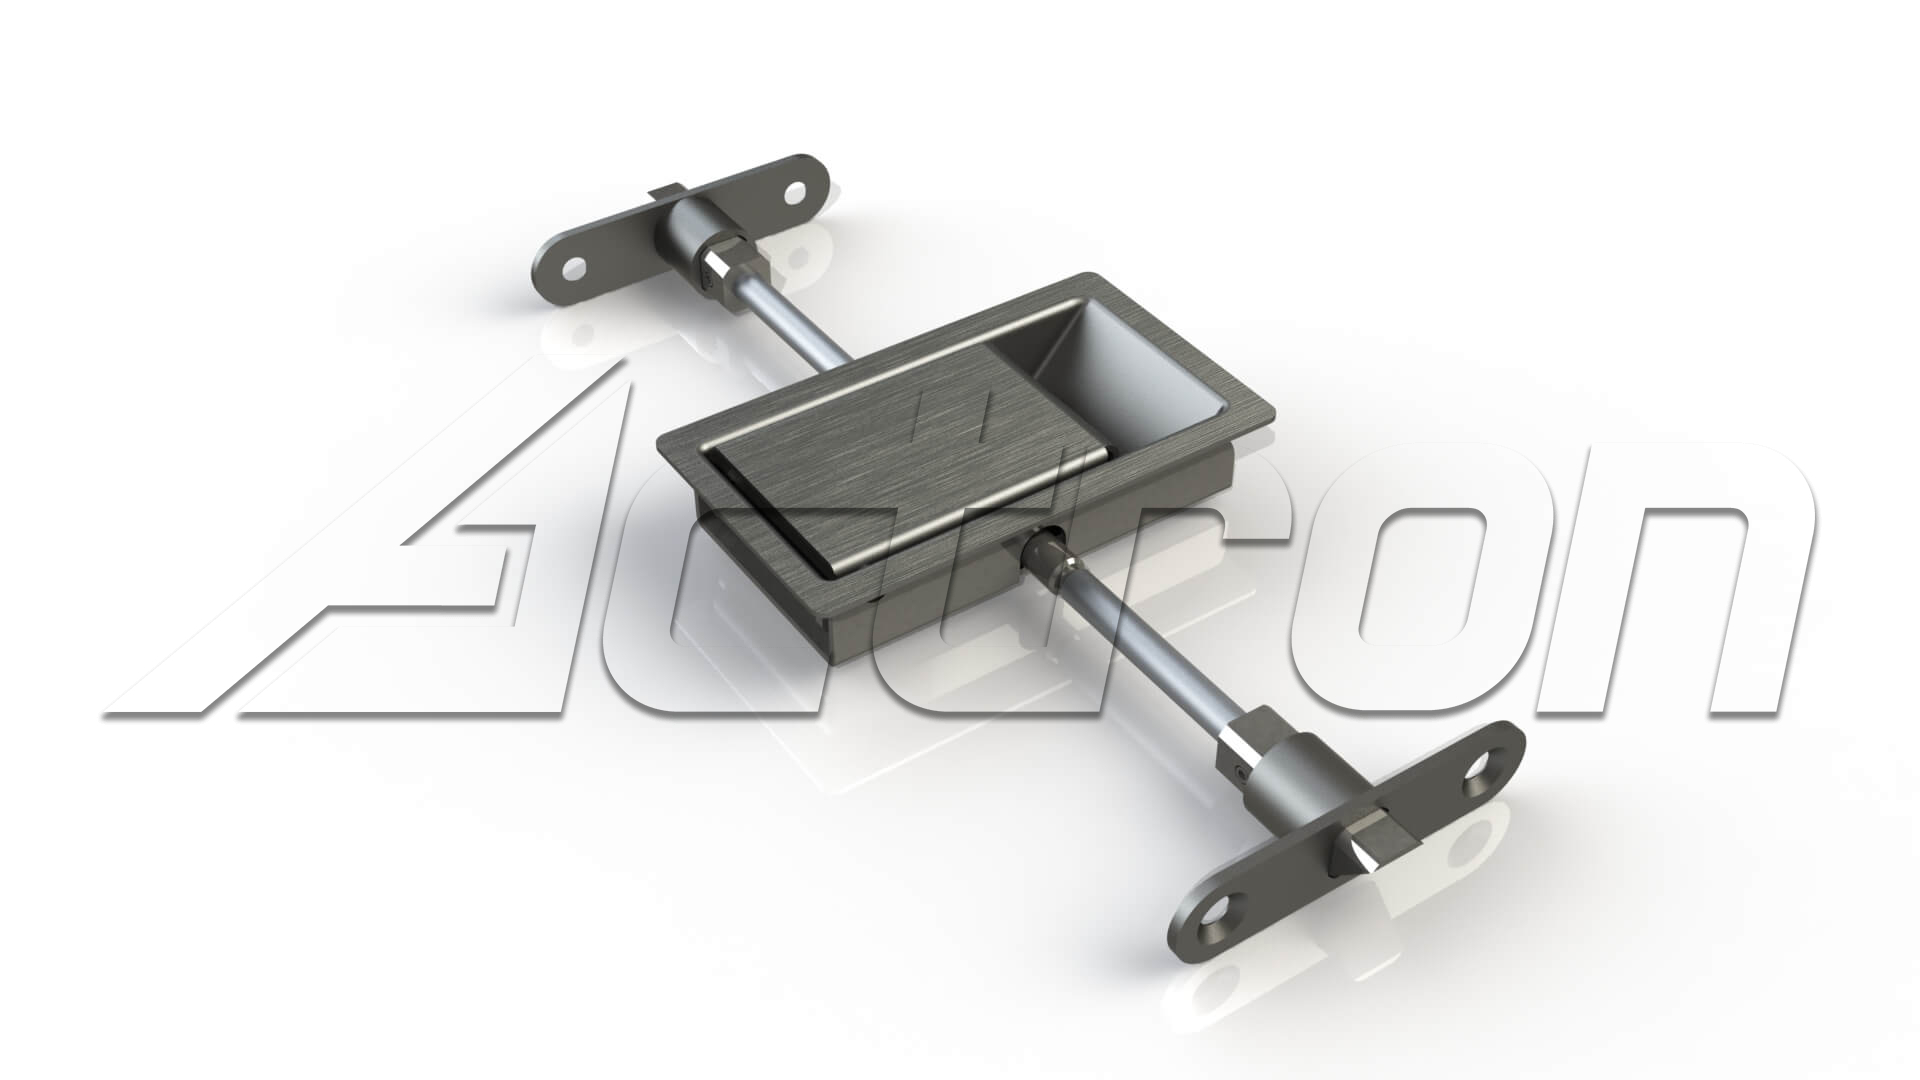 door-bolting-system-8211-paddle-5504-a39049.jpg